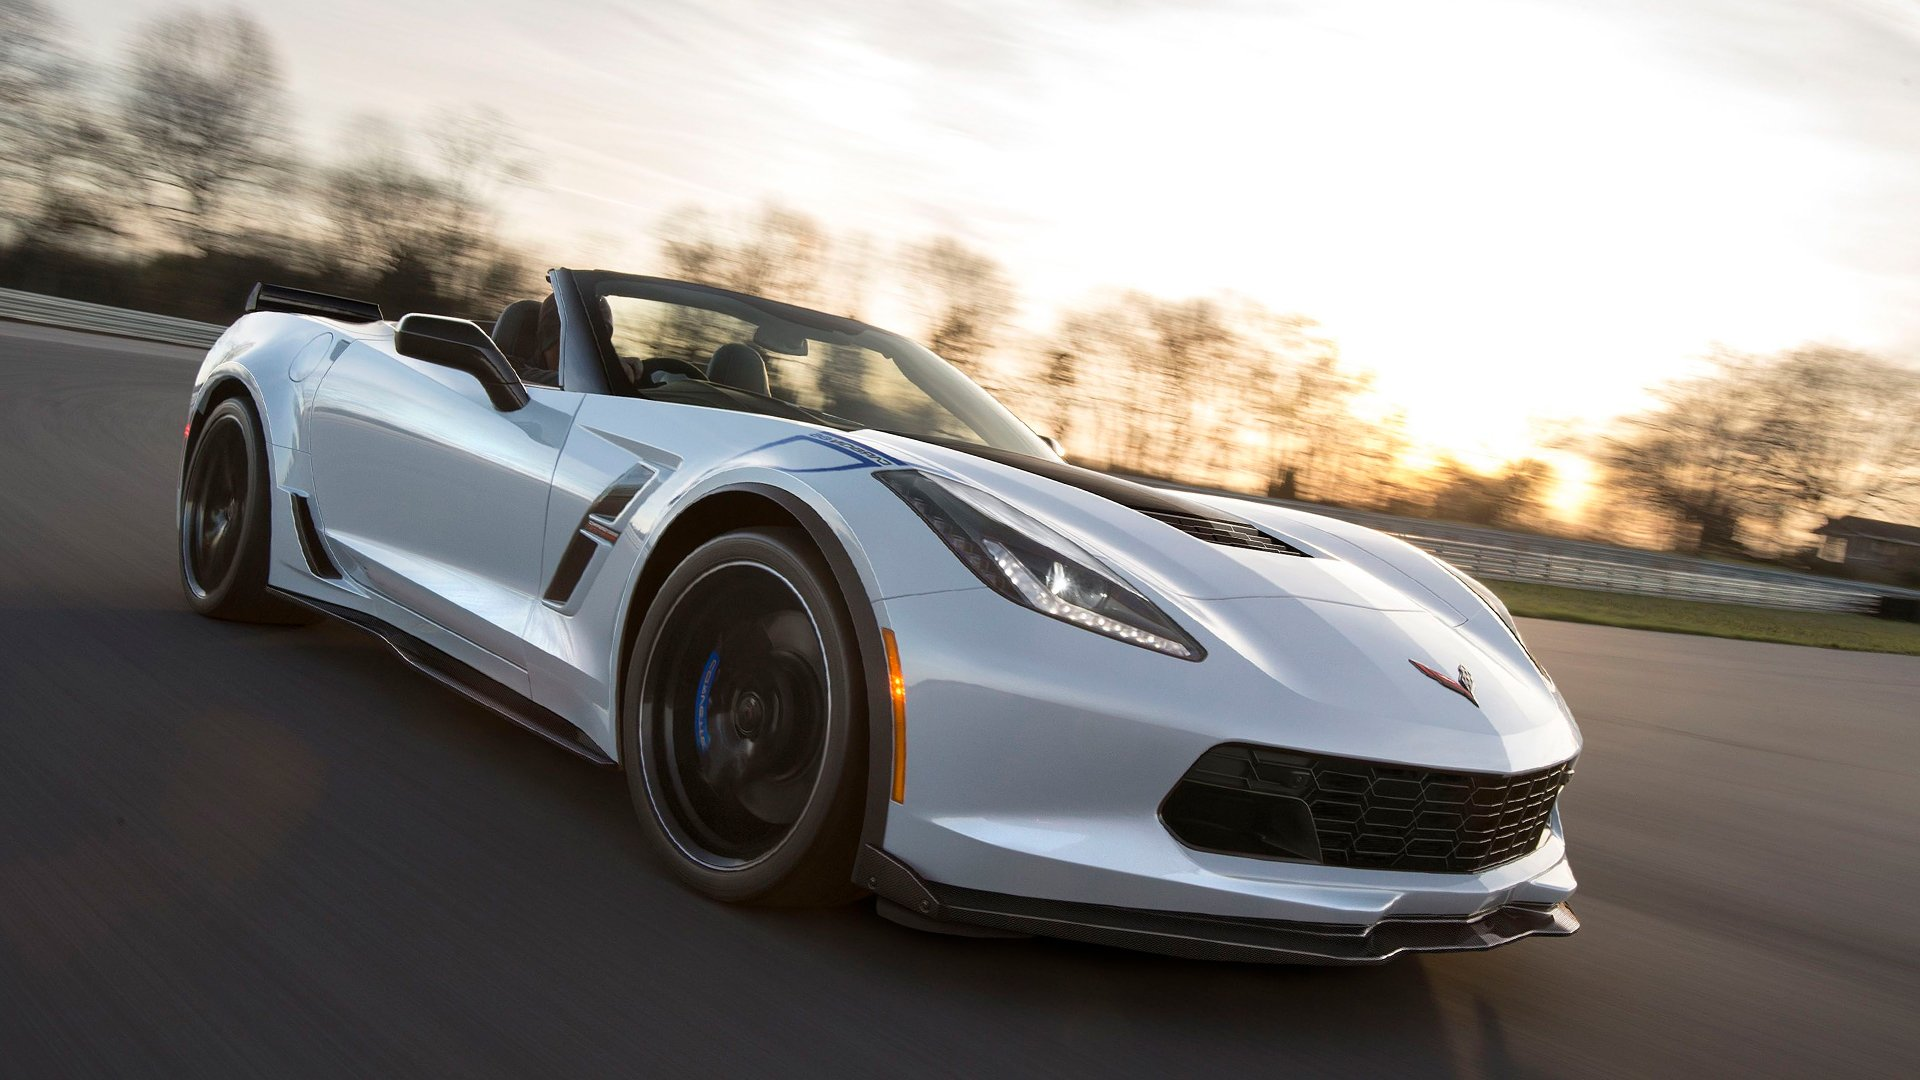 Limited Edition 2019 Chevrolet Corvette HD